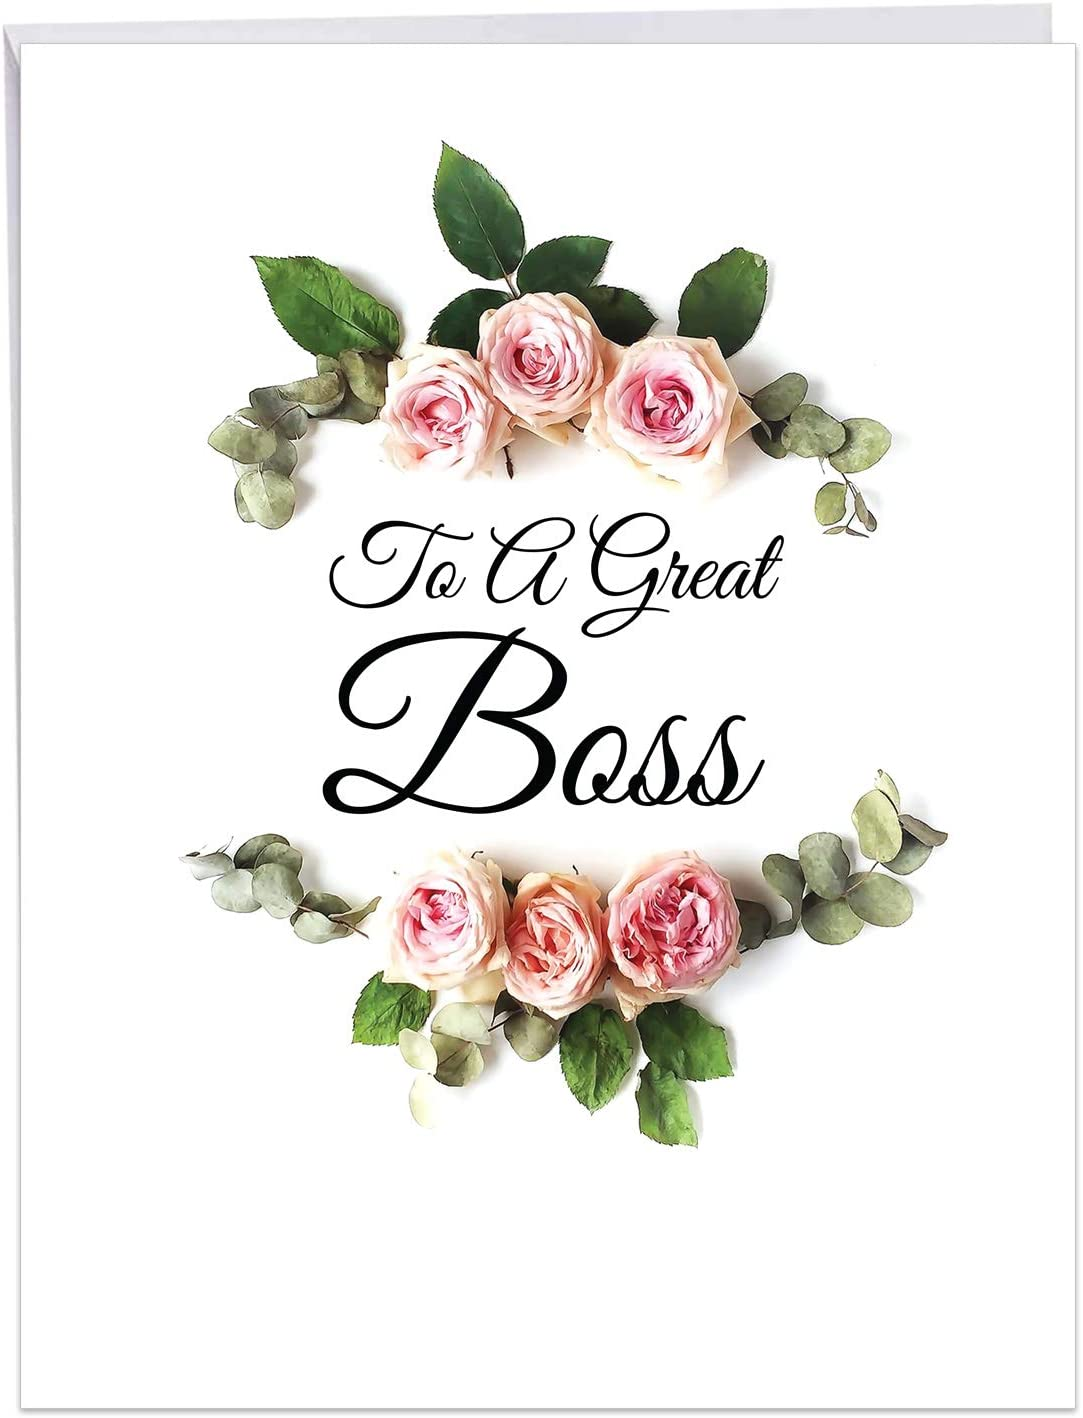 The Best Card Elegant Flowers - Boss's Day From All of Us Card with Envelope (8.5 x 11 Inch) Featuring Script Sentiment Surrounded by Beautiful Floral Arrangements J4175ABOG-US